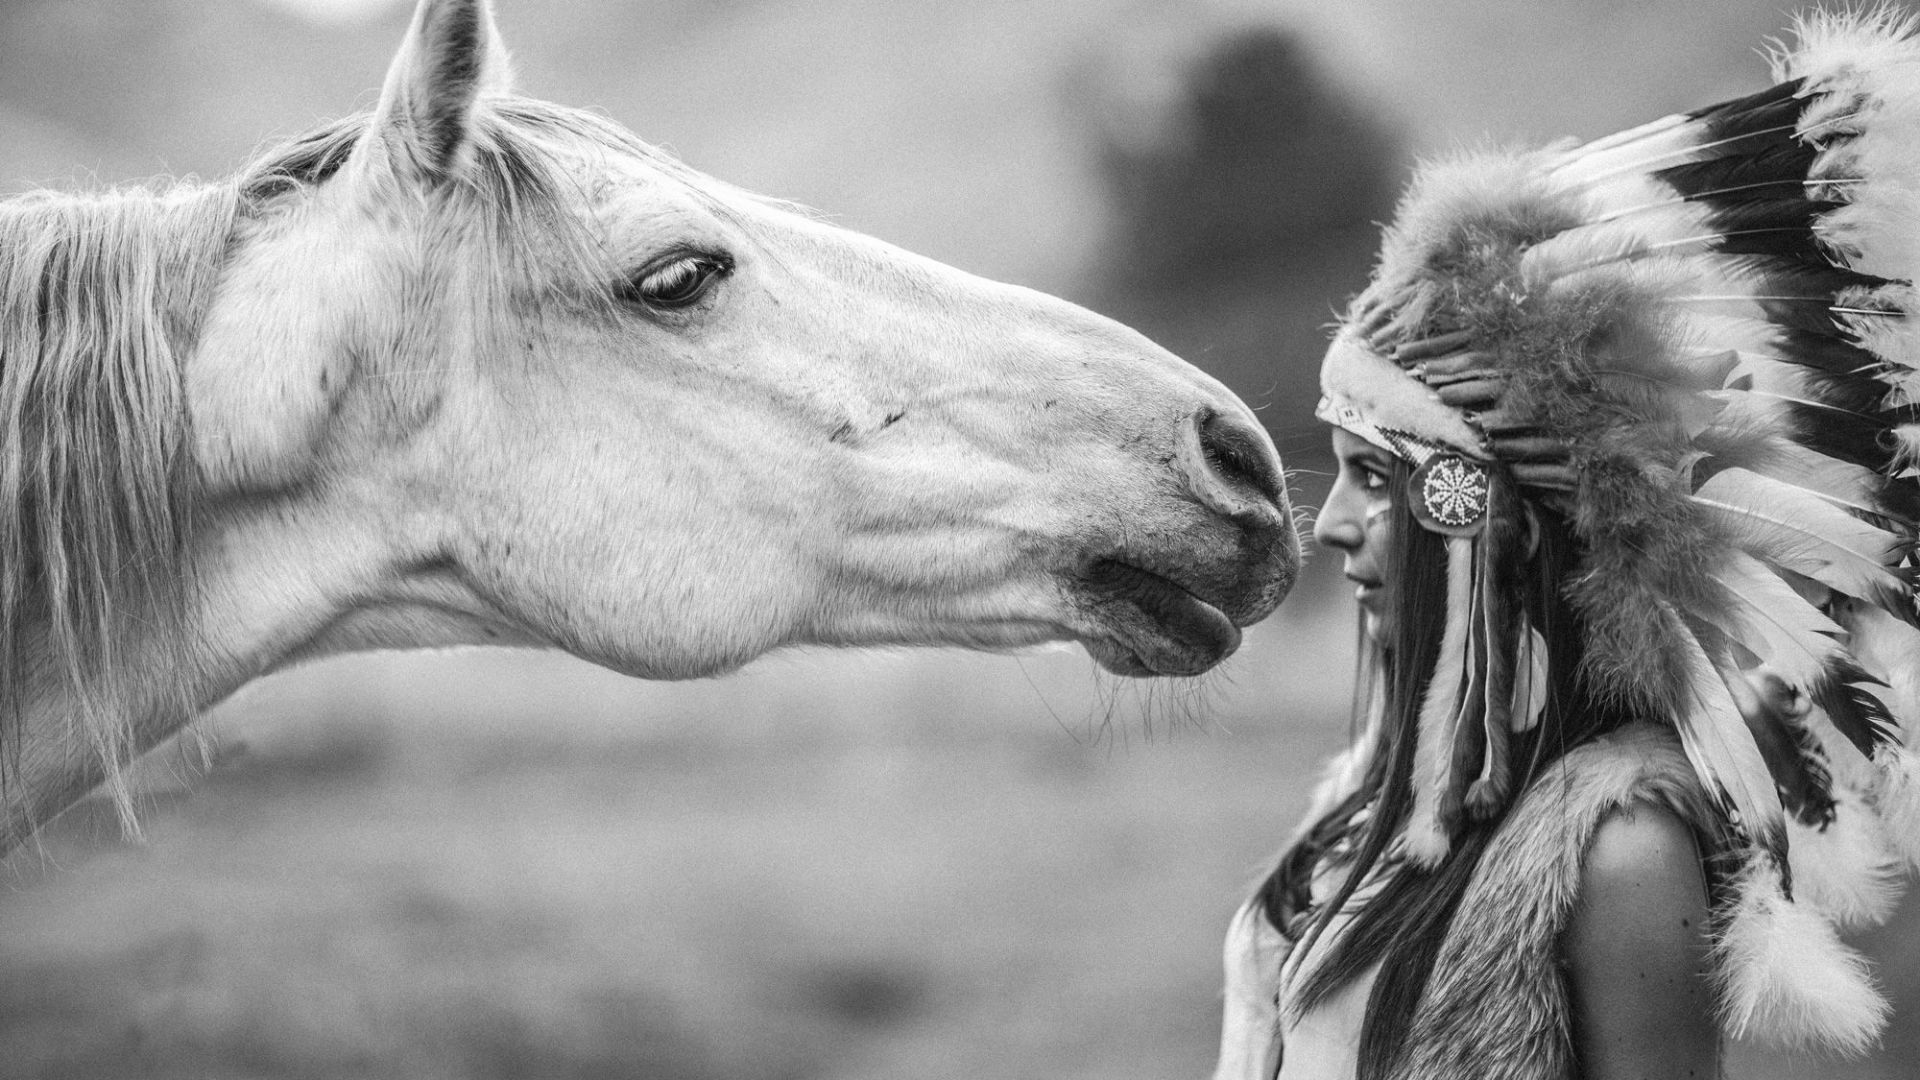 Horse, girl, Indian, cute animals (horizontal)